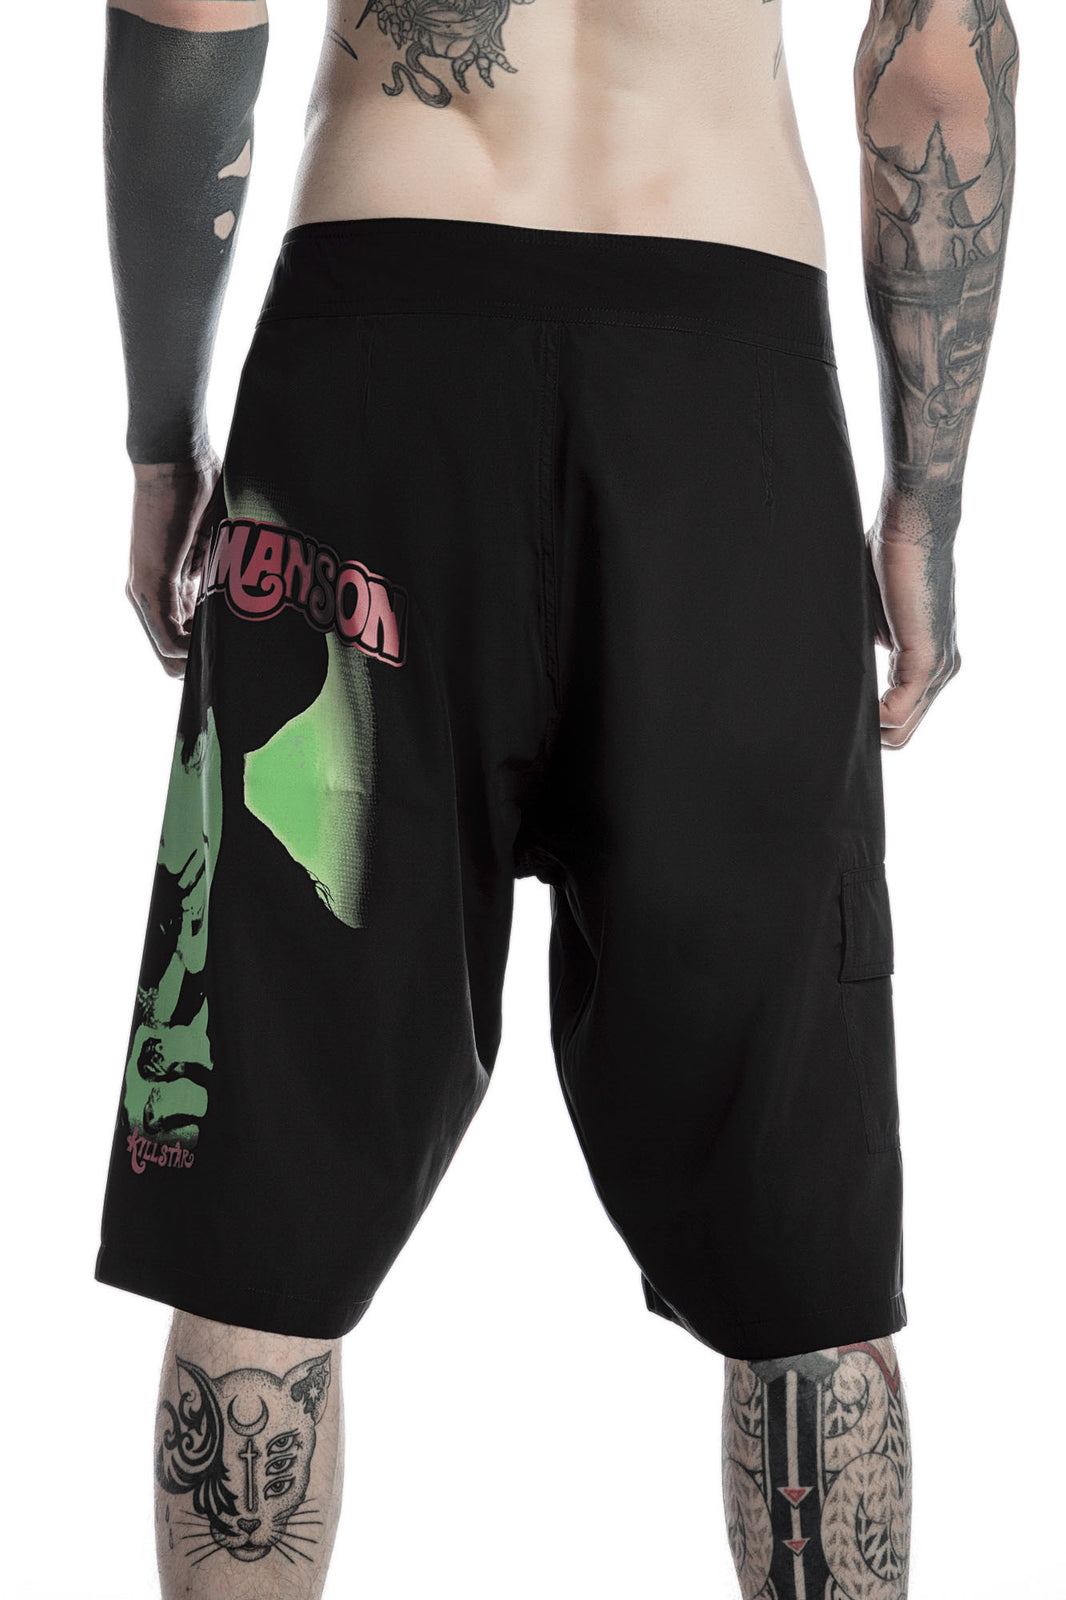 Fiend Board Shorts [B]